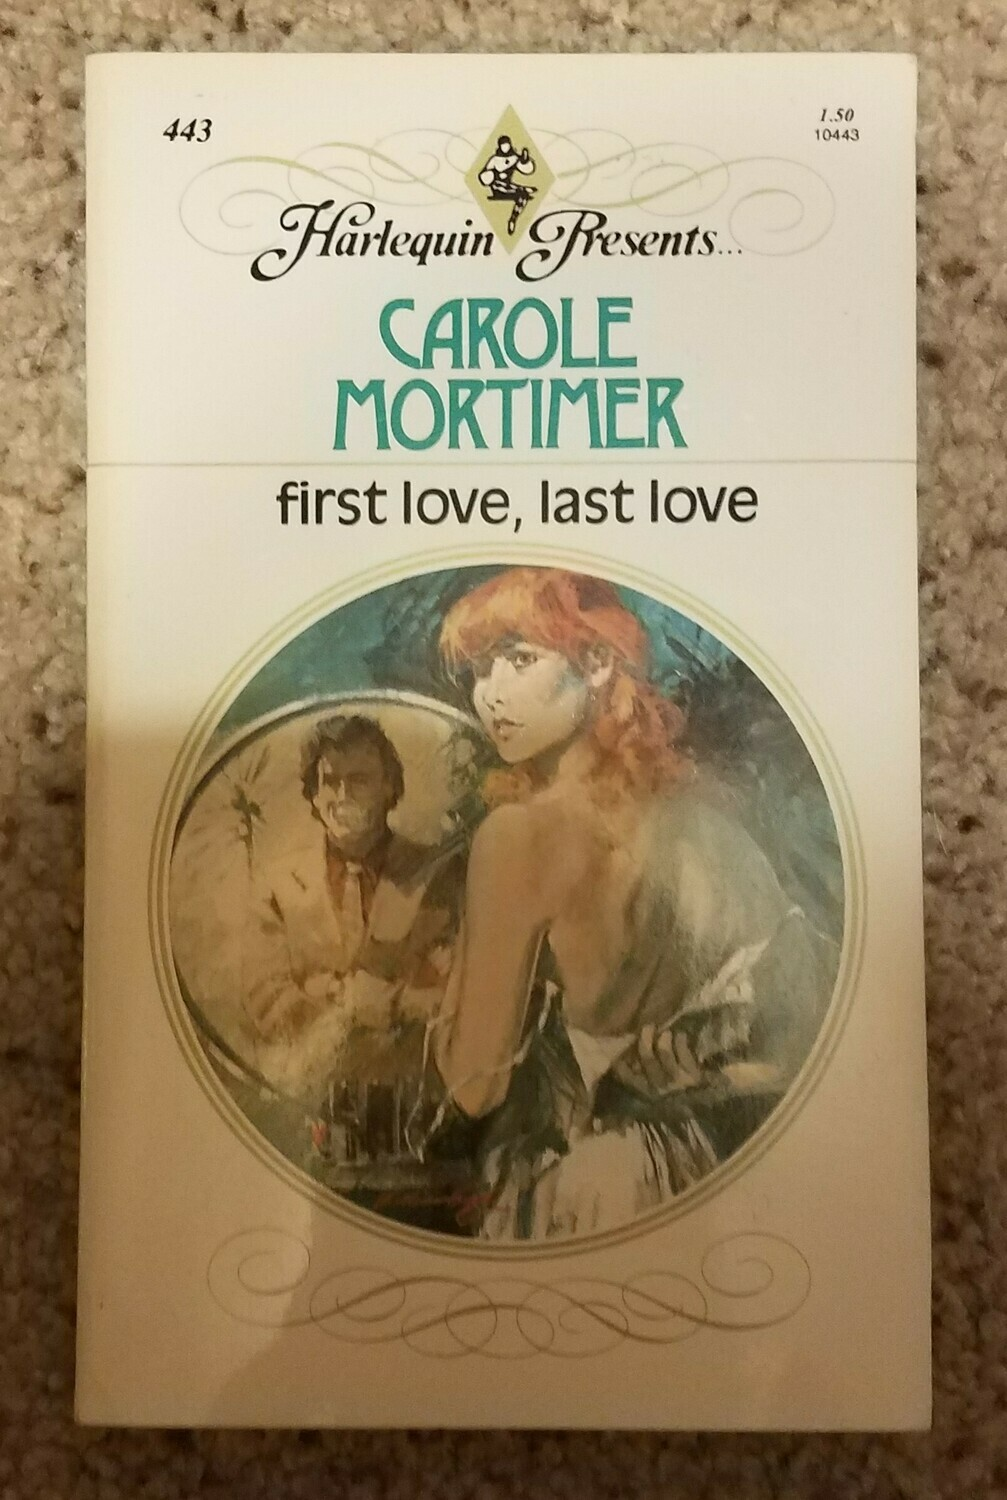 First Love, Last Love by Carole Mortimer